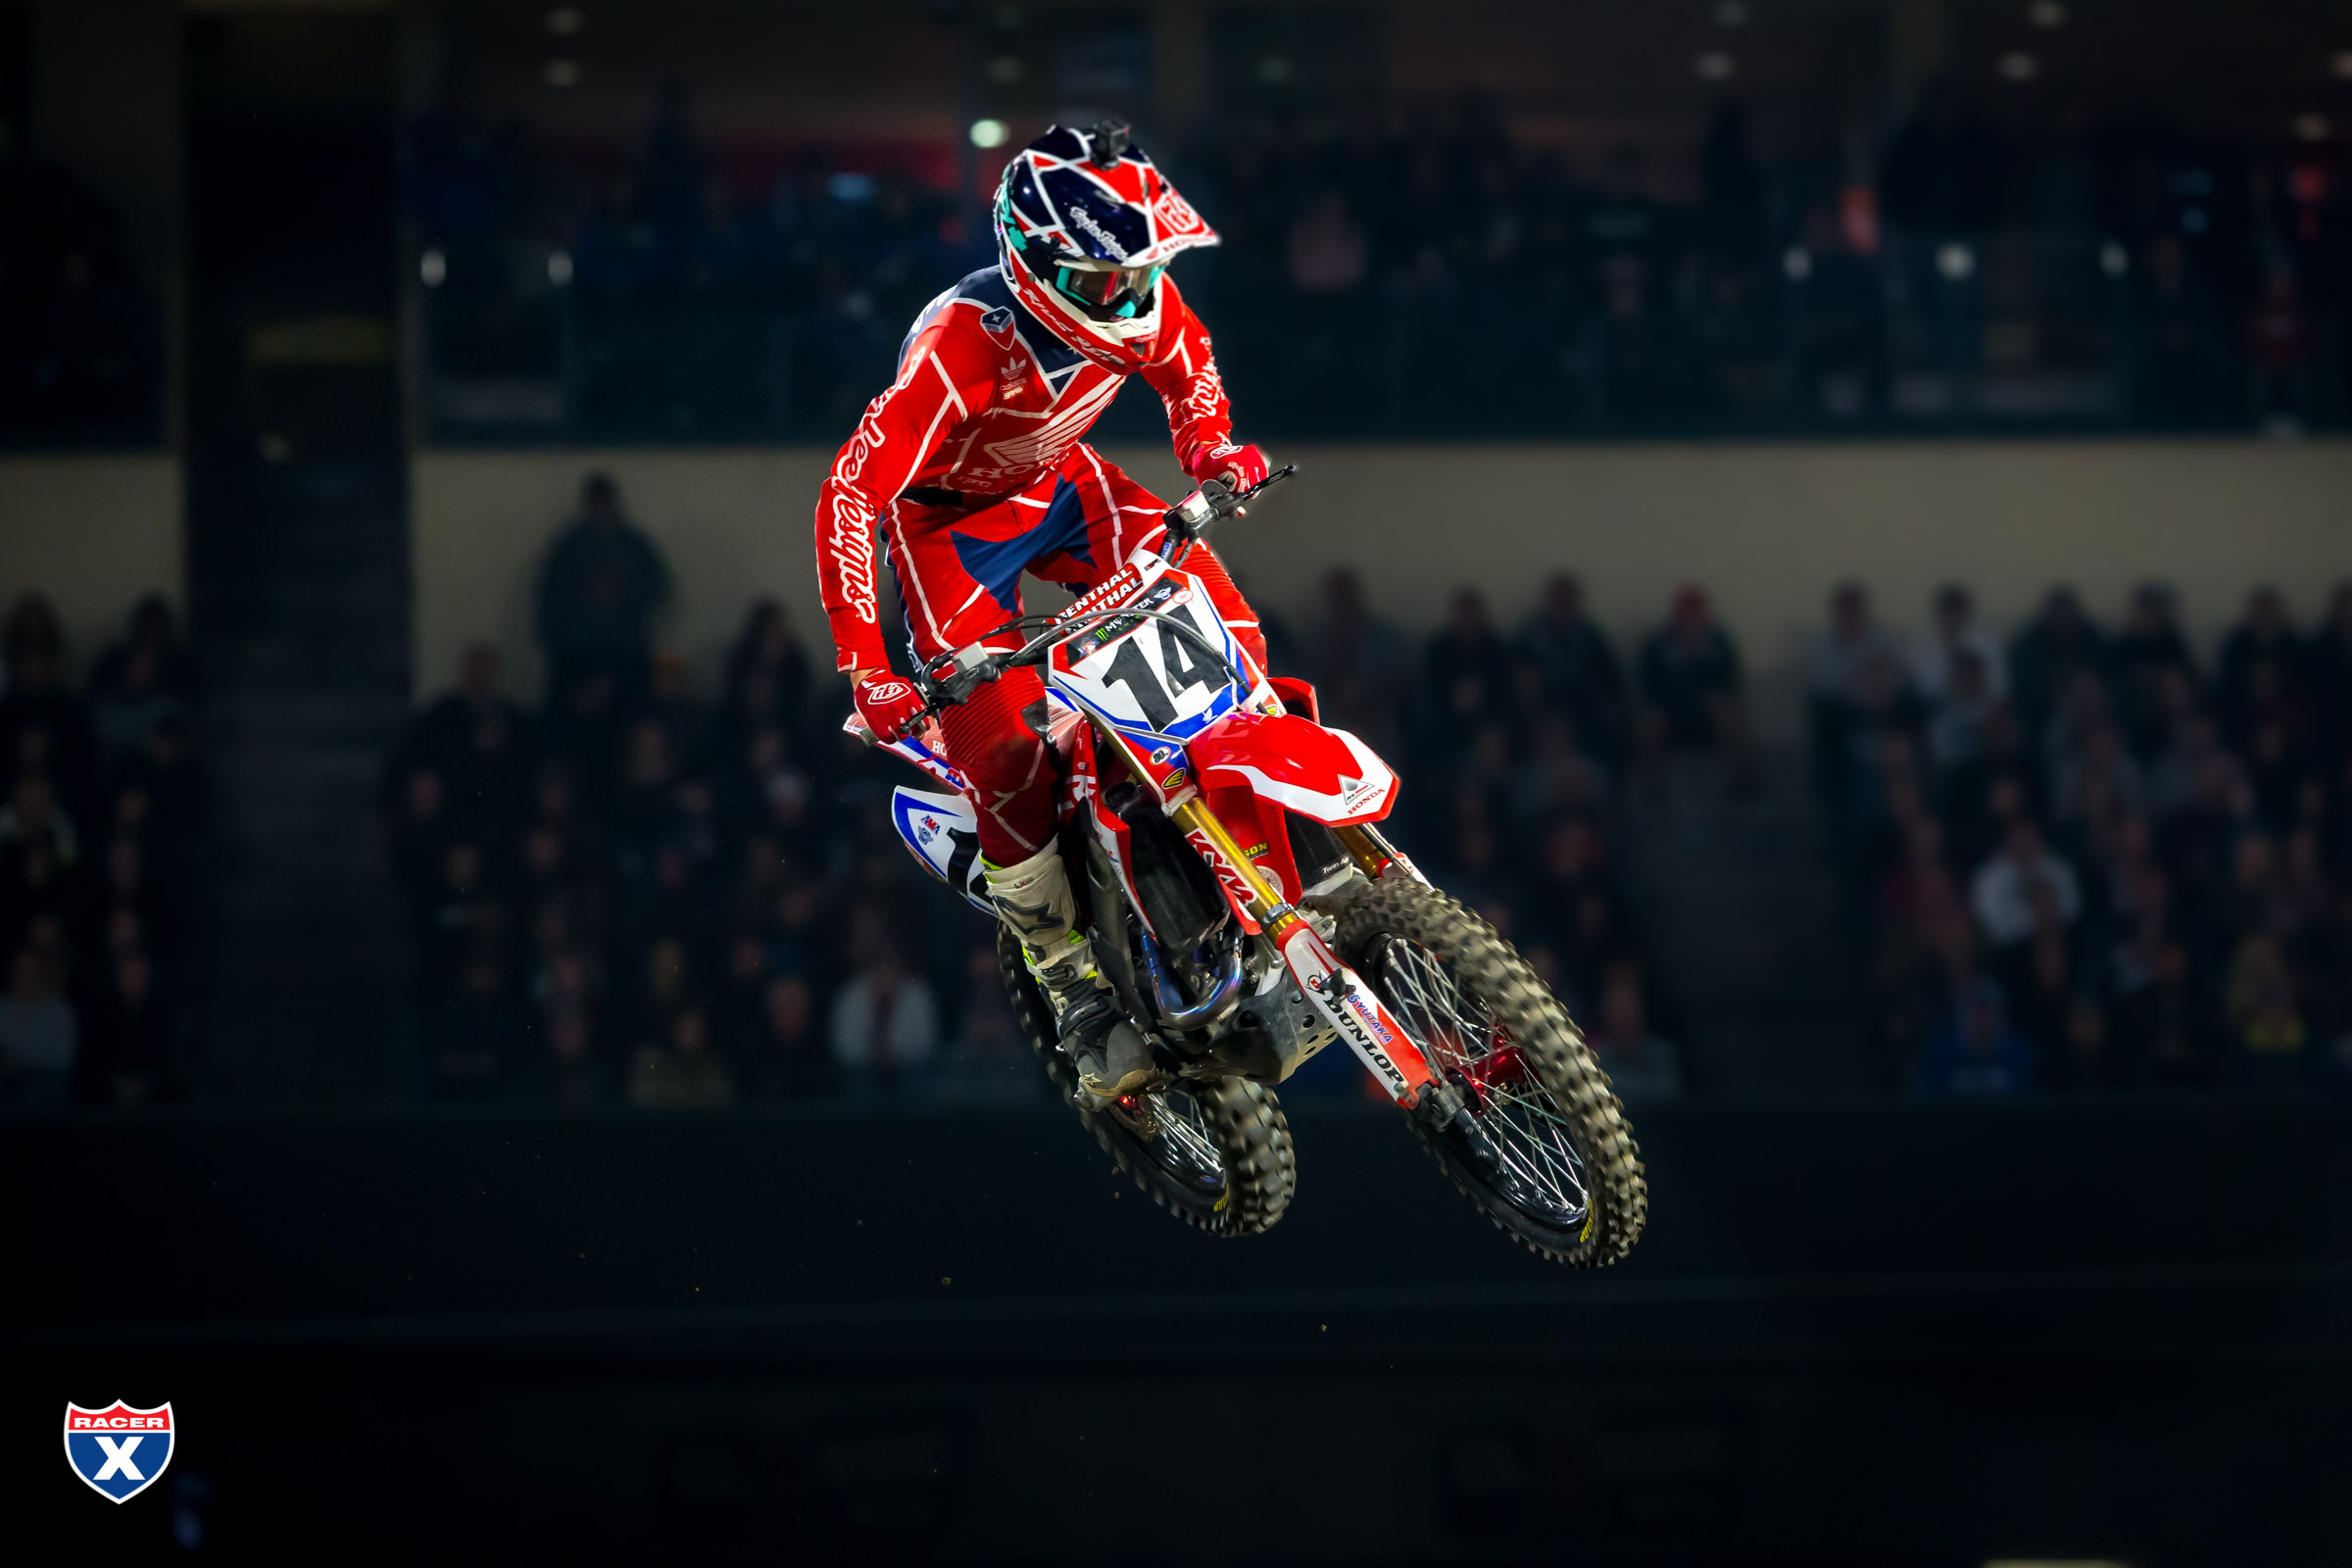 Seely_SX18_A1_RS_0735